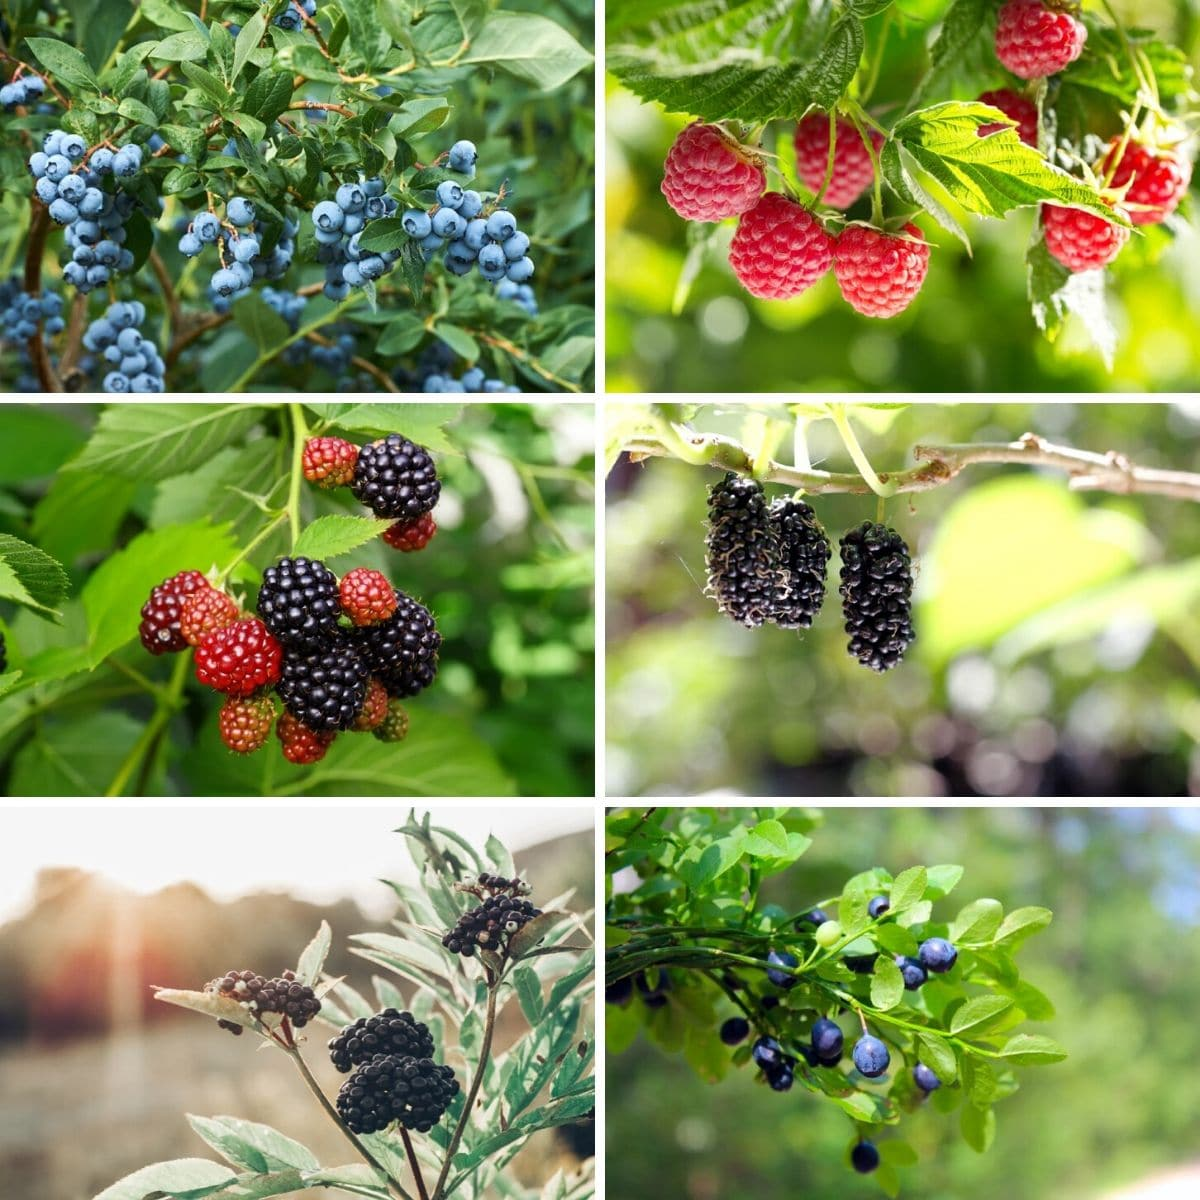 Photo collage featuring berry bushes from the article